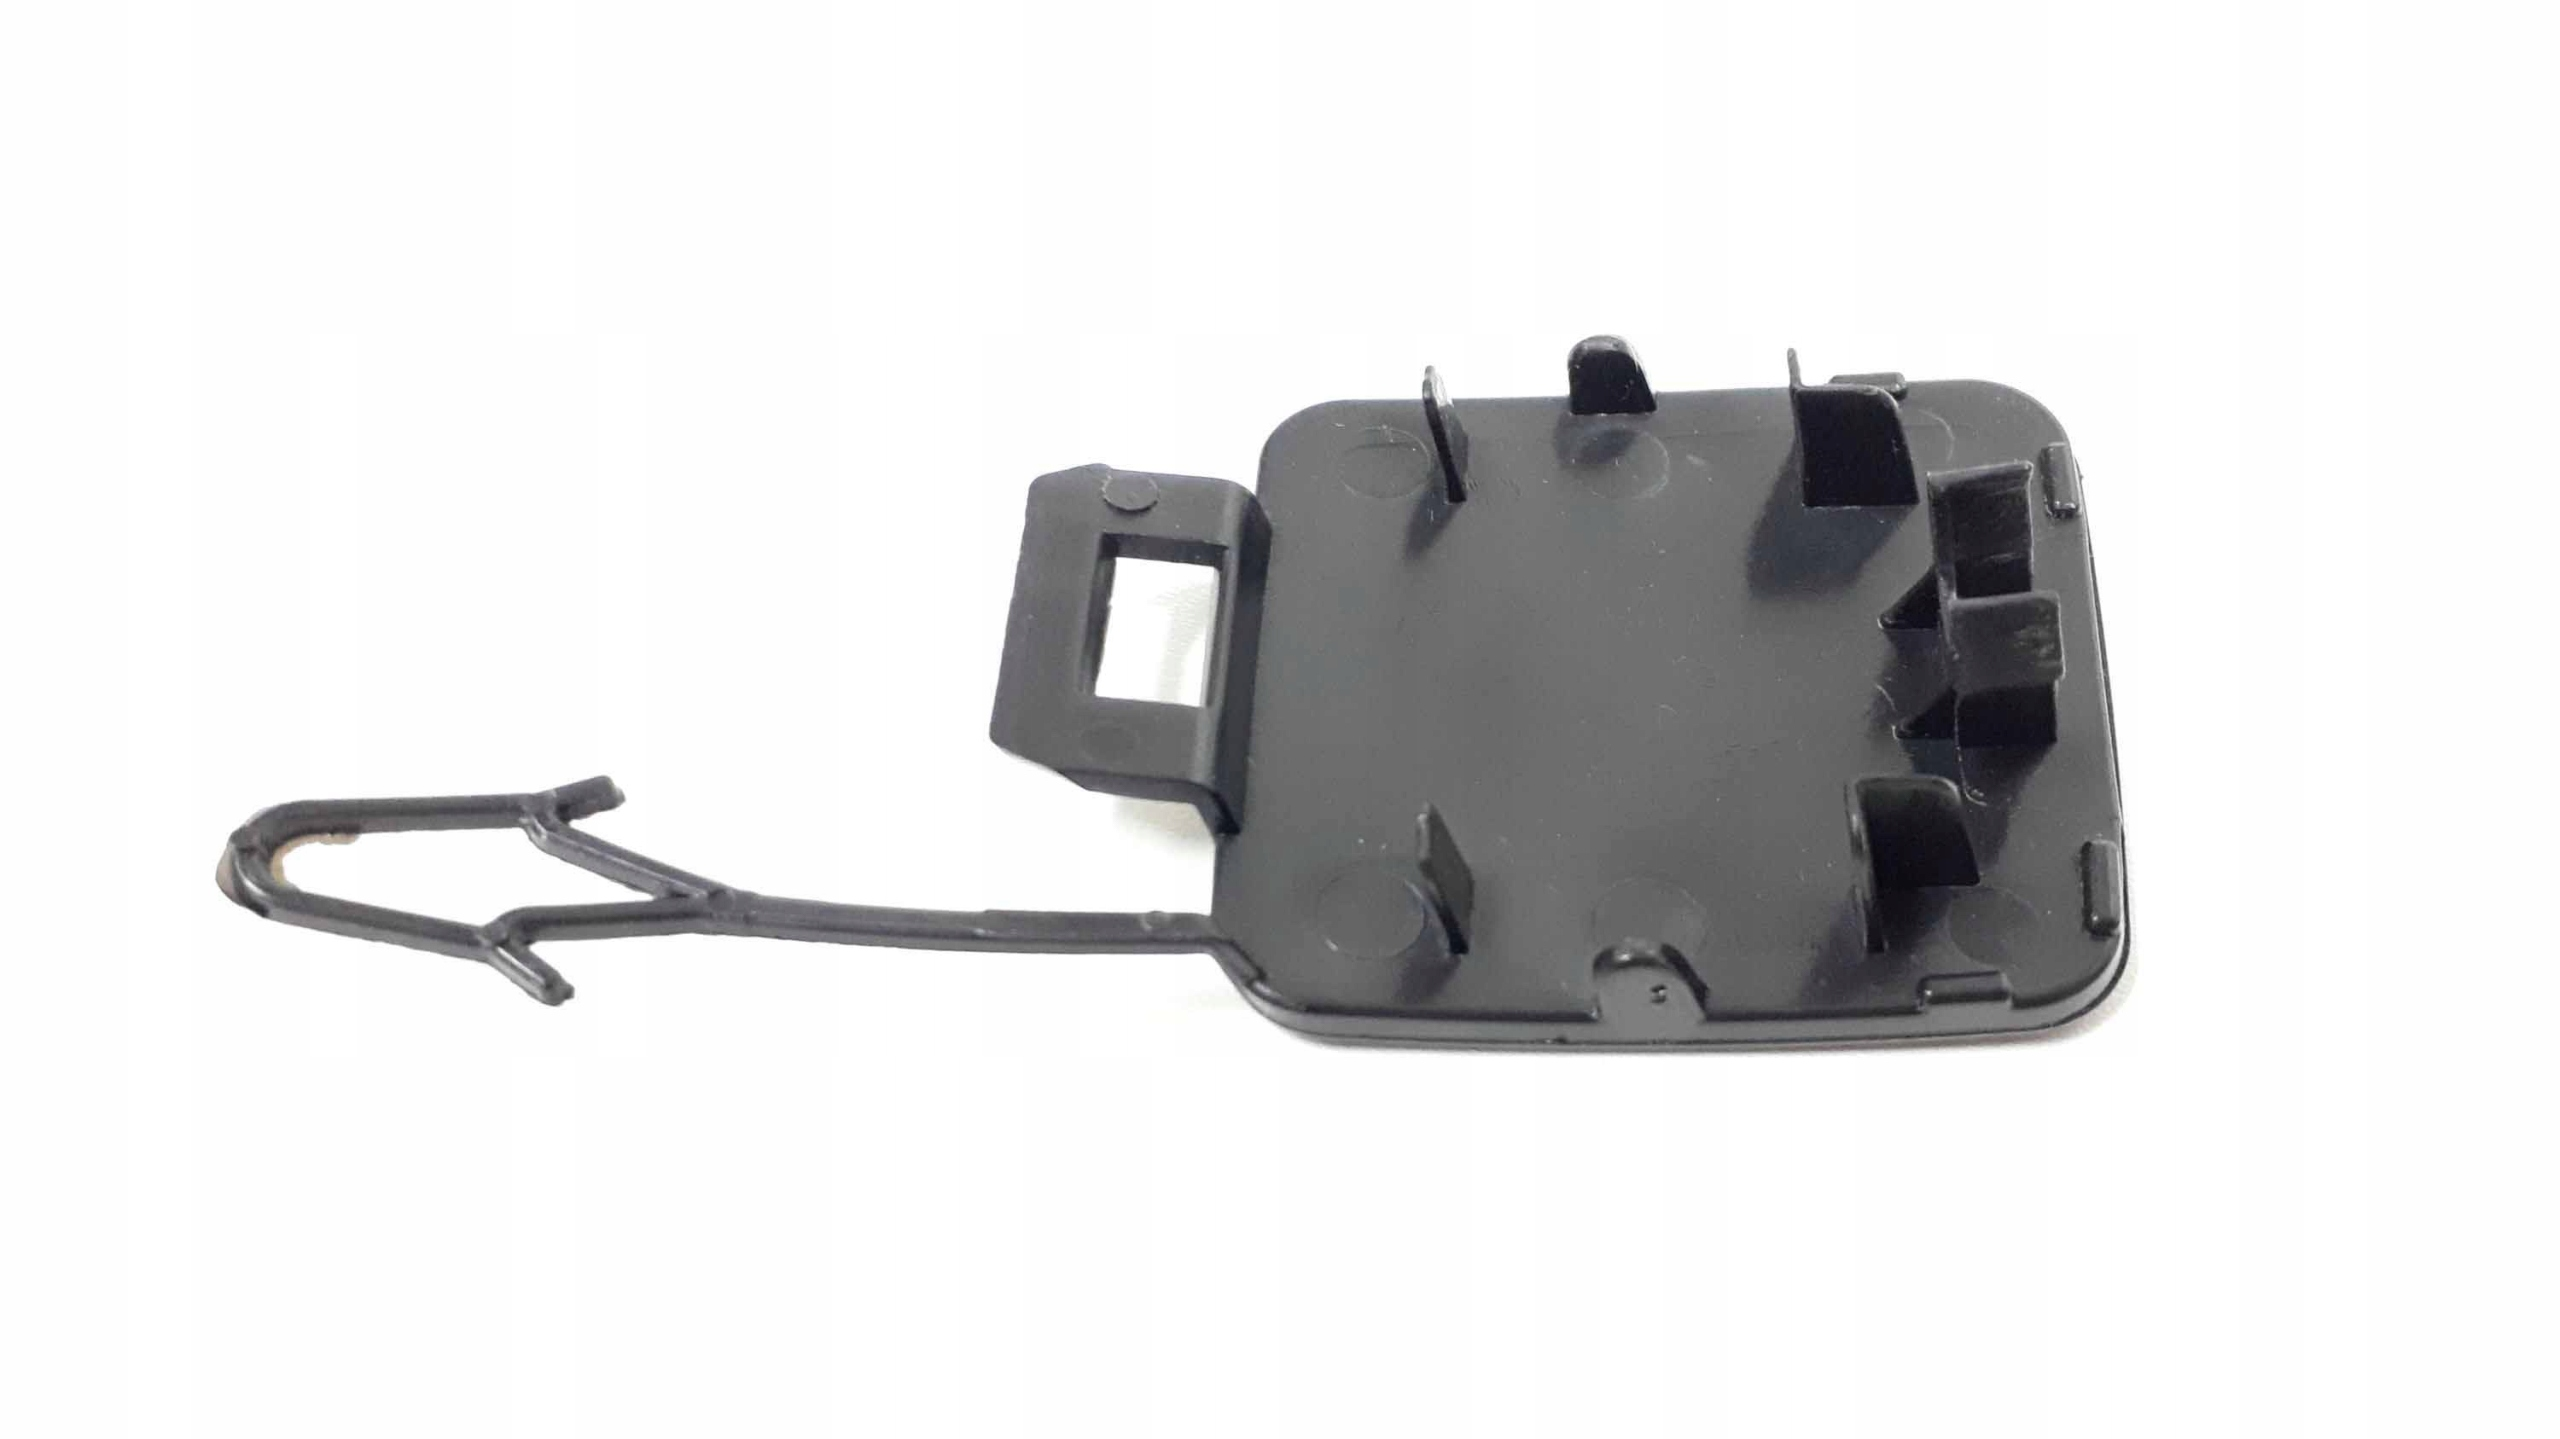 Tow Hook Cover Vw Polo Front 2g0807241 Xdalys Lt